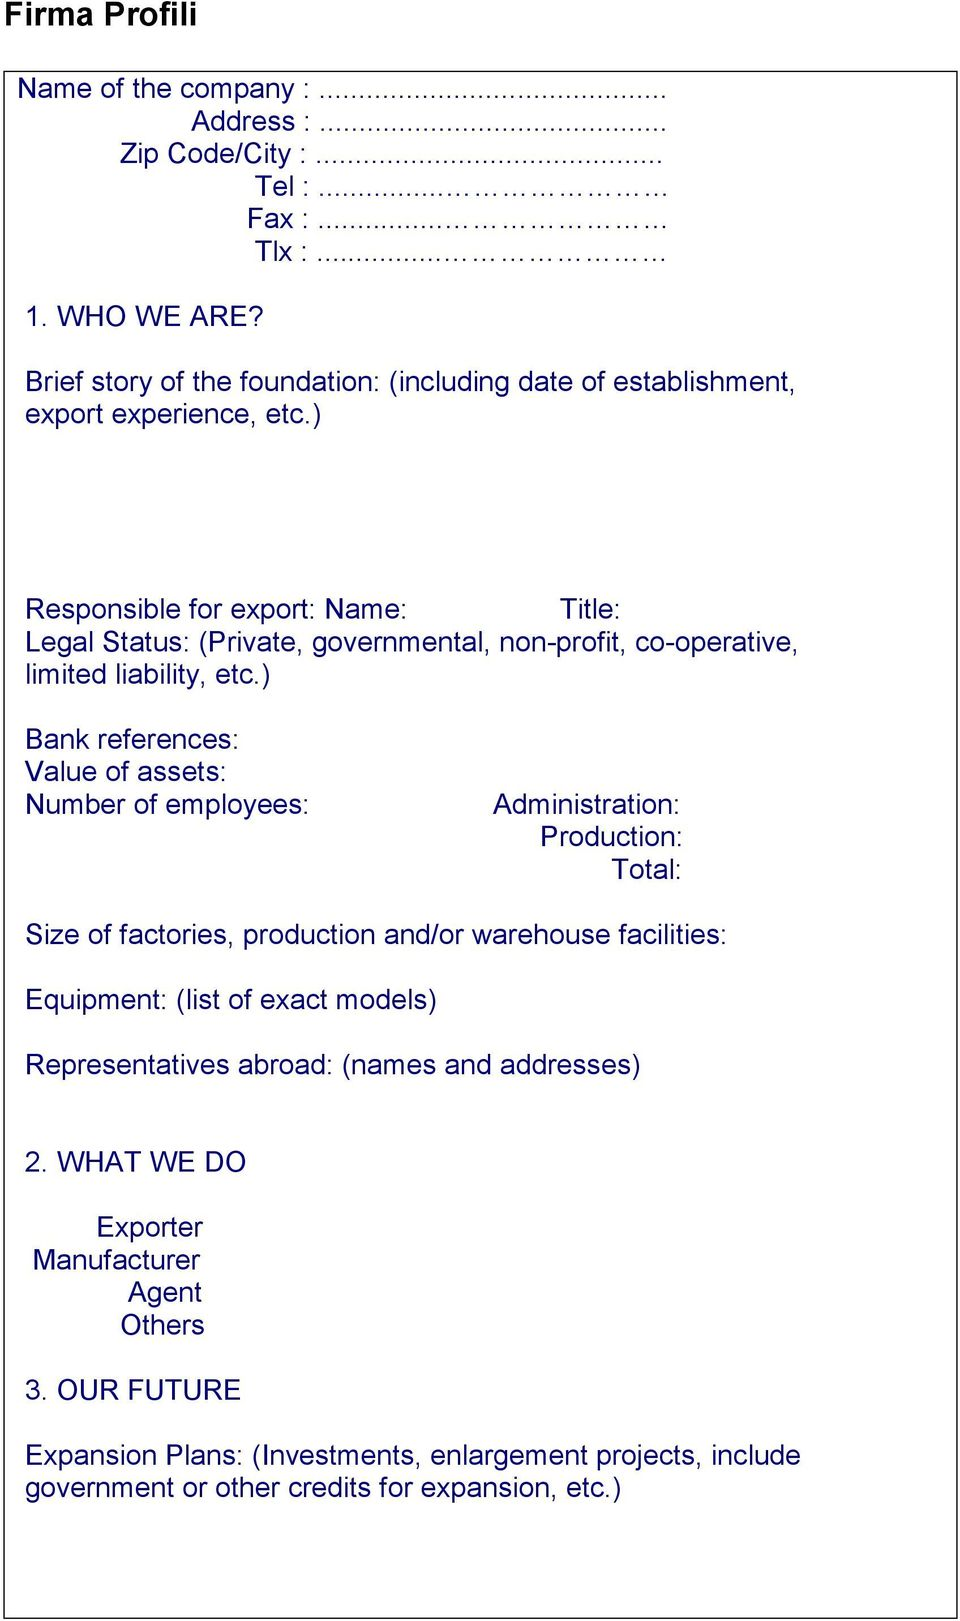 ) Responsible for export: Name: Title: Legal Status: (Private, governmental, non-profit, co-operative, limited liability, etc.